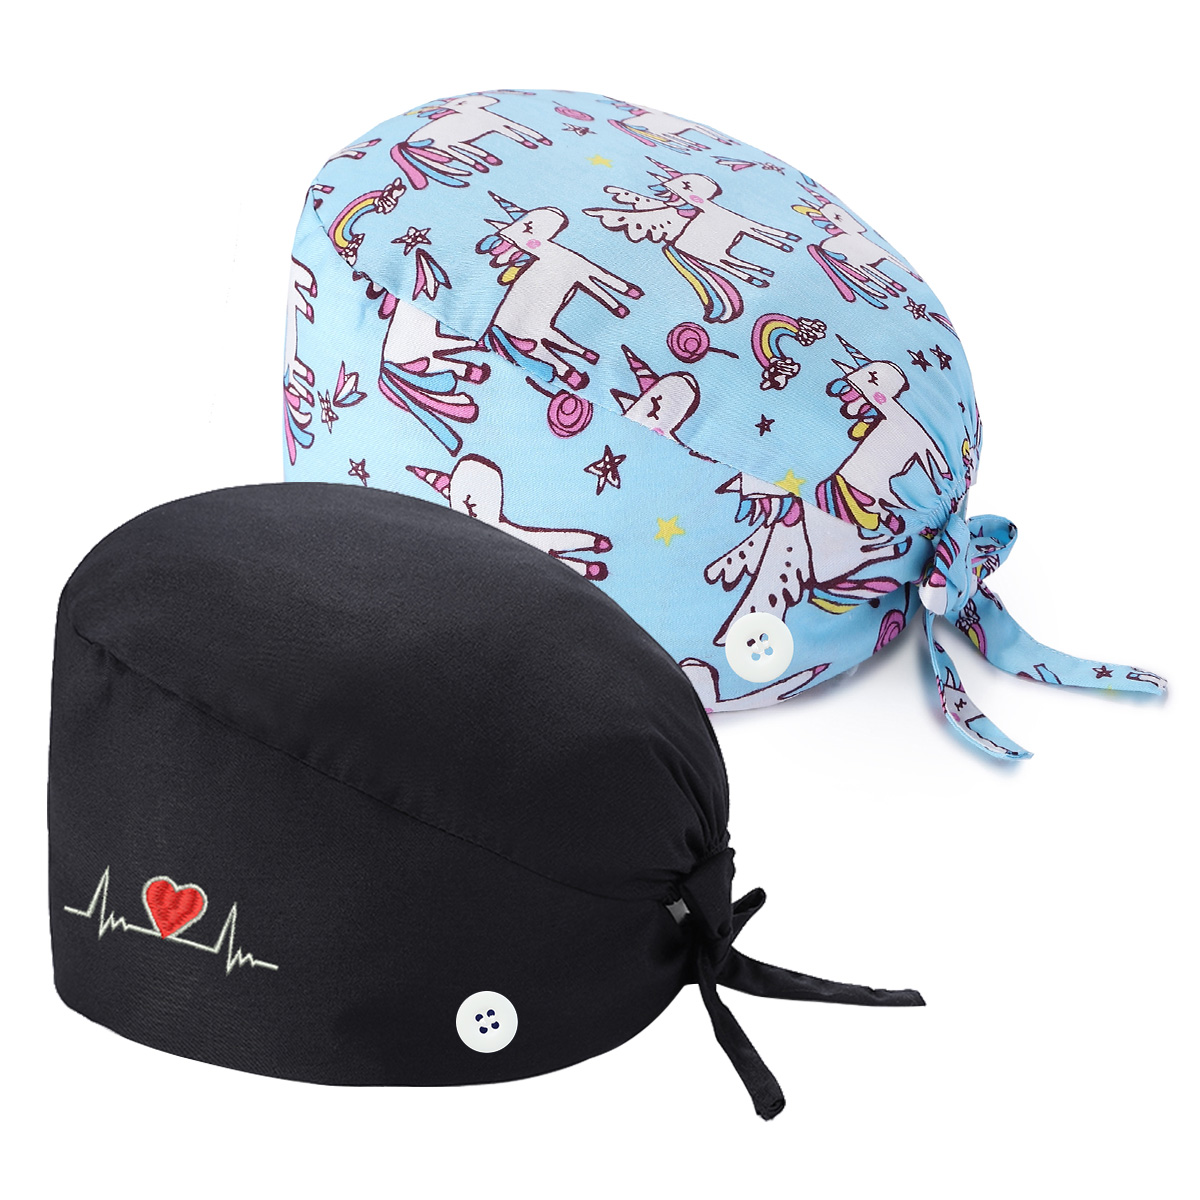 Details about  /100/% Cotton Christmas Tree Ponytail Scrub Cap With Mask Buttons